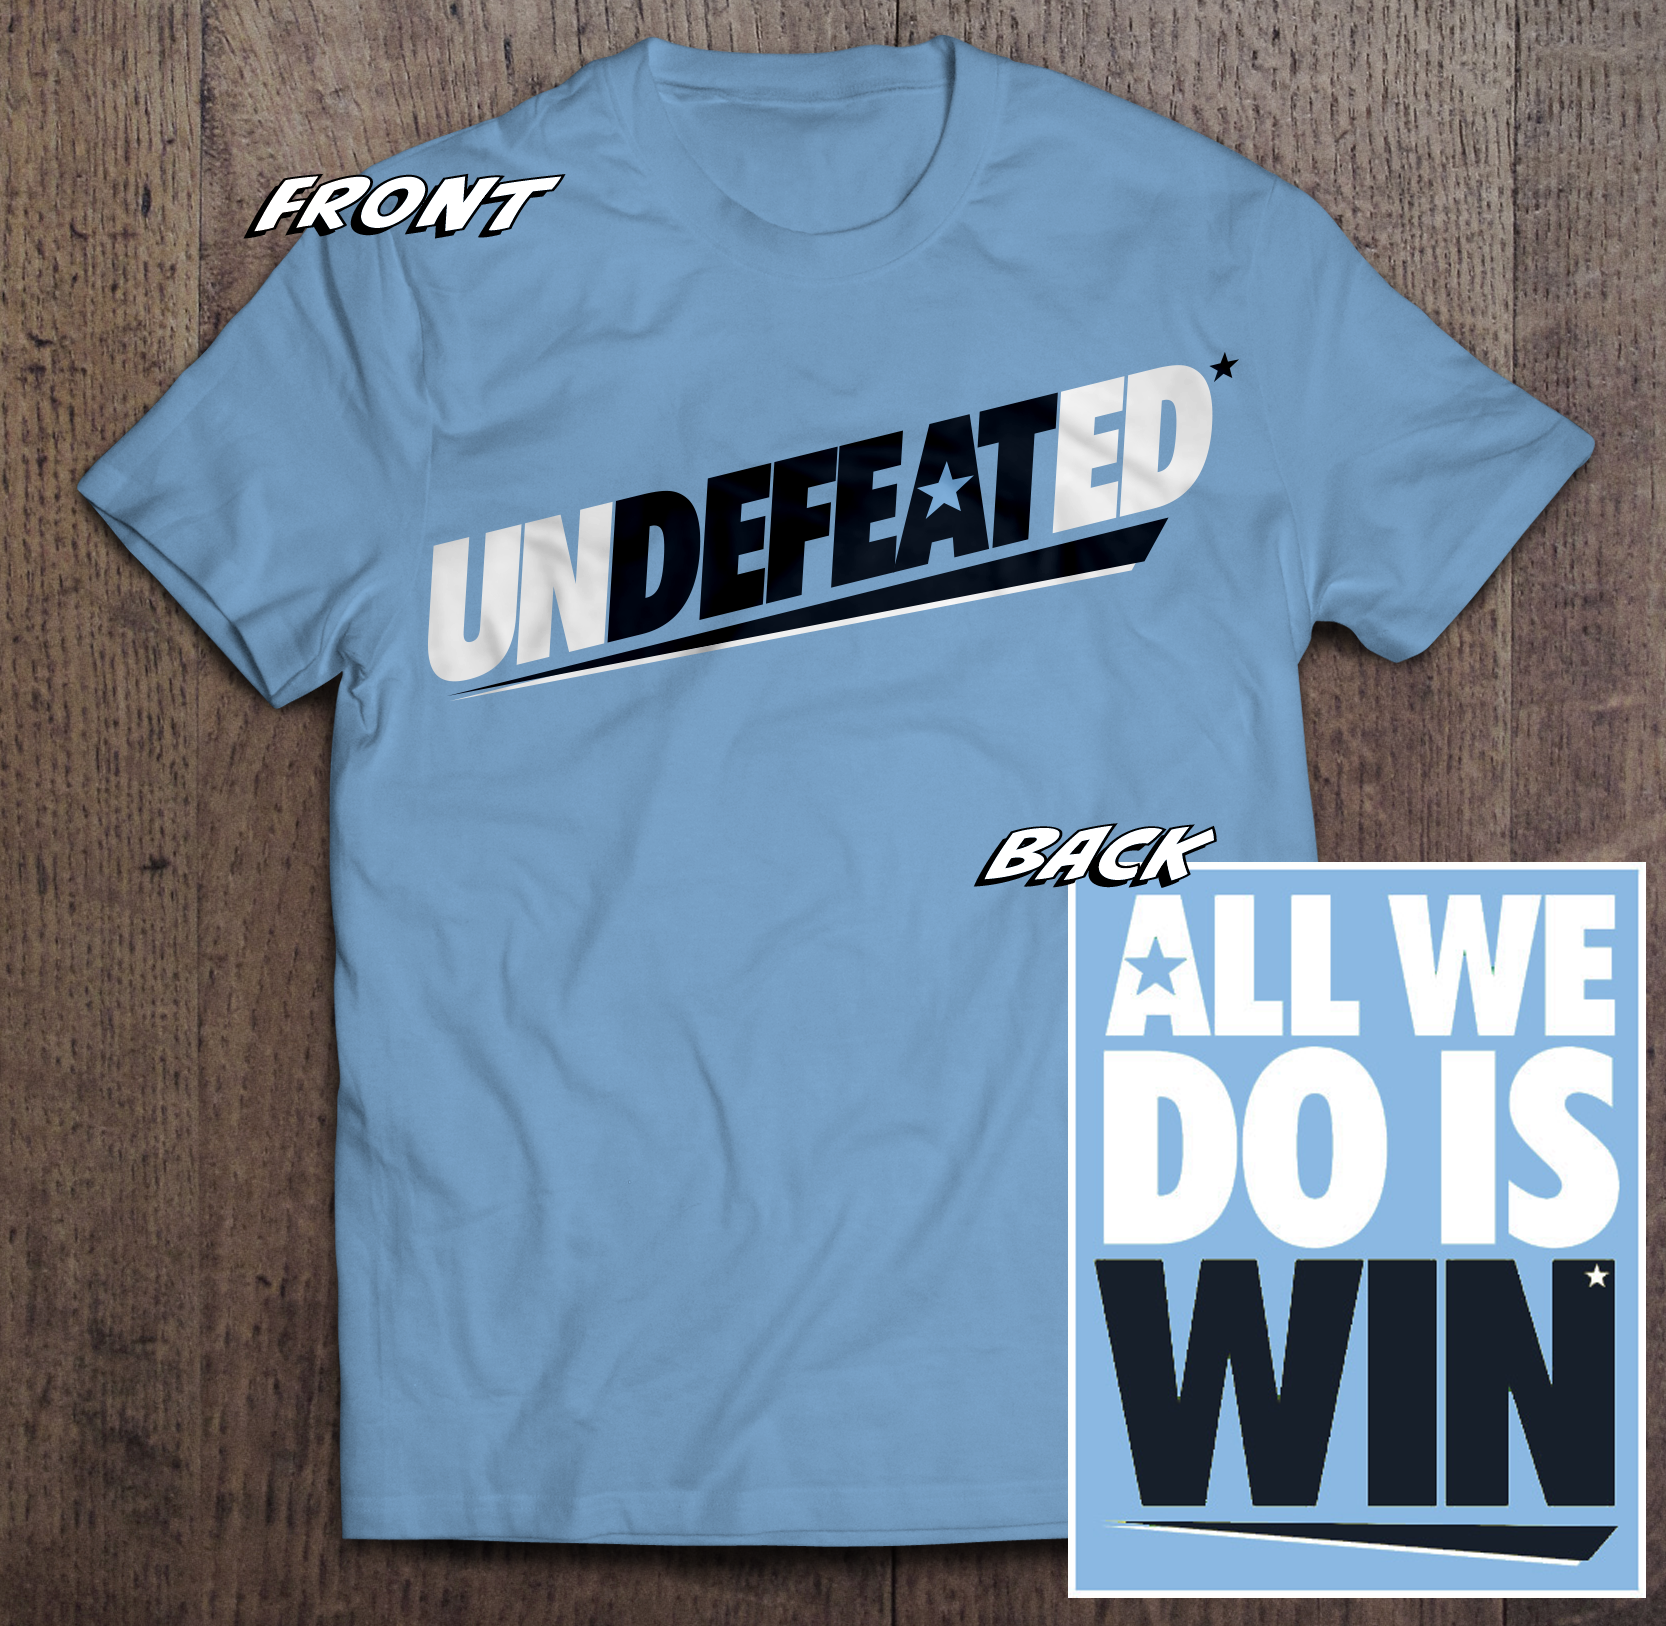 PRE-ORDER - NSW Undefeated* Tshirt TWIL-NSWU-2018